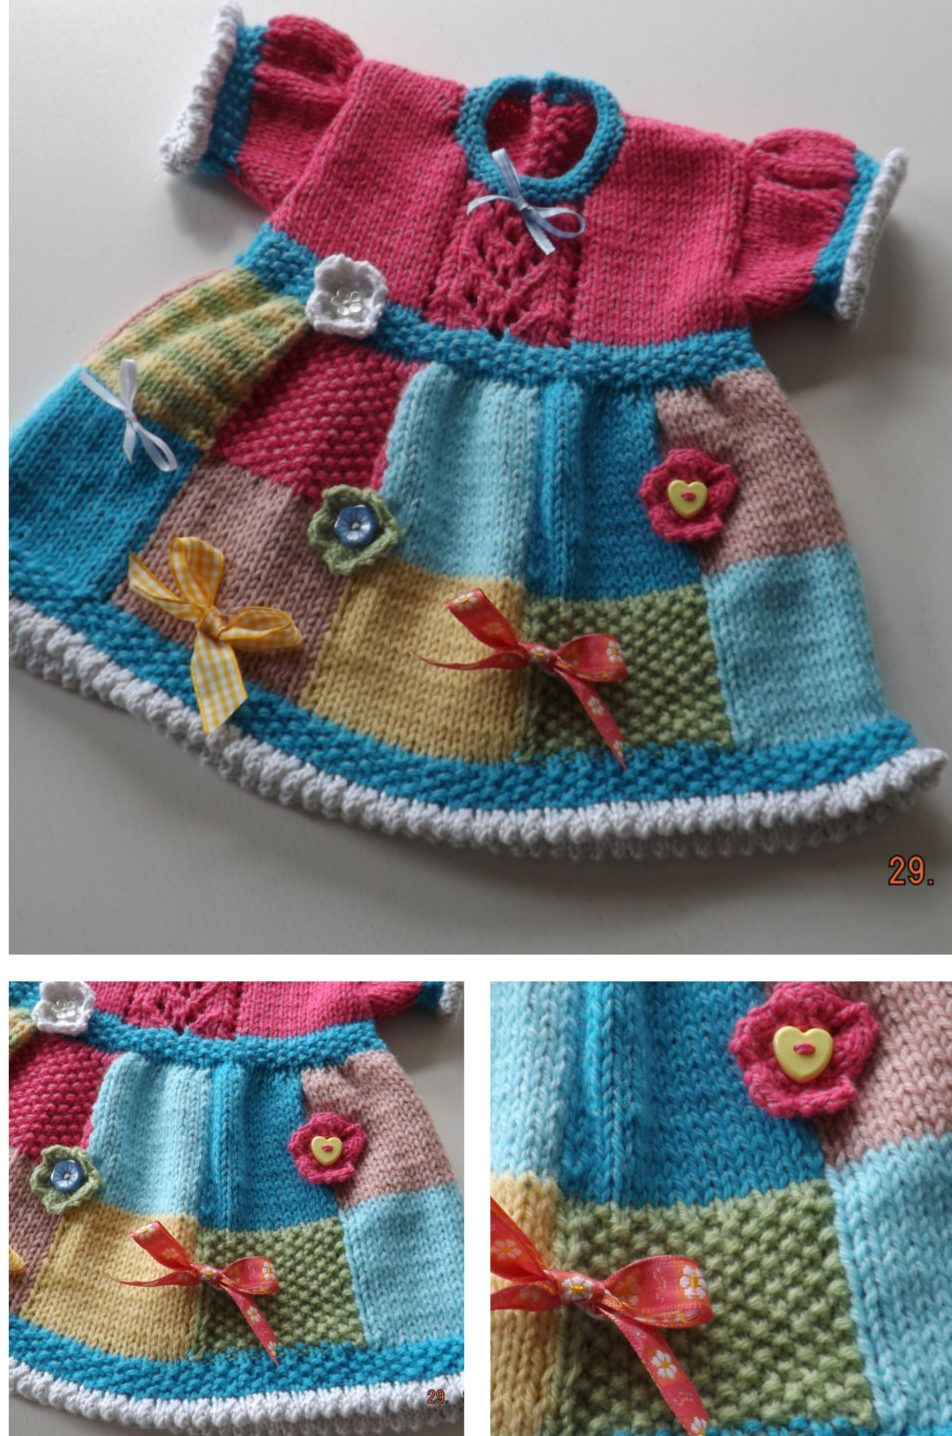 f16d7ee7ecf Knitting Pattern for Patchwork Baby Dress - Great stashbuster! This baby  dress is designed to use up oddments of leftover yarn. The skirt is knitted  in faux ...